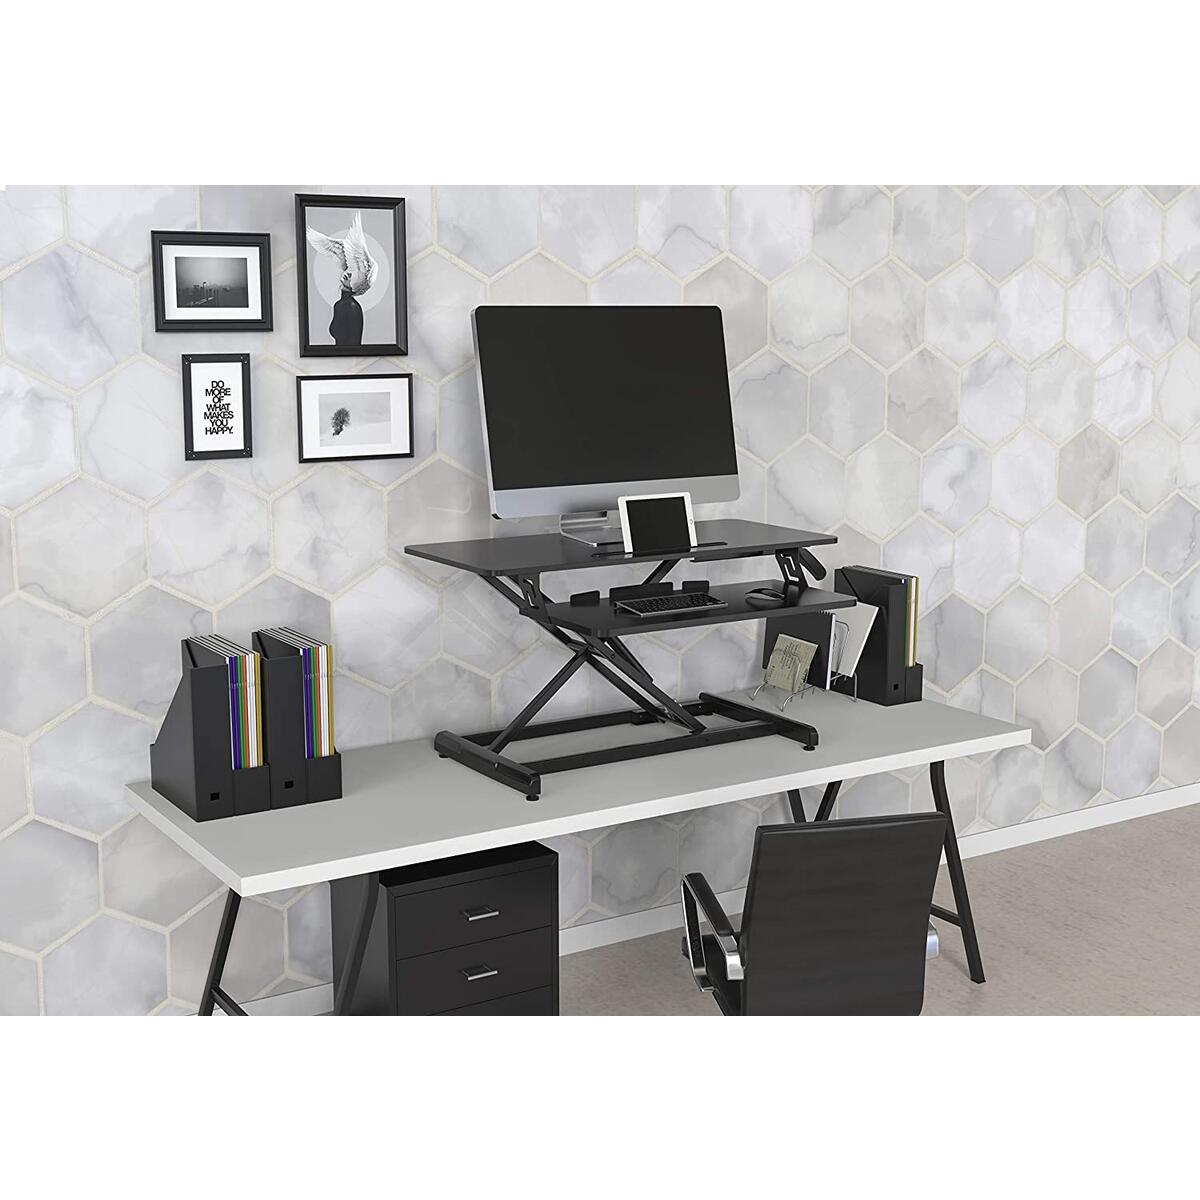 IBAMA Height Adjustable Standing Desk Converter,Tabletop Sit Stand Up Desk Fits Dual Monitors, Deep Keyboard Tray, Gas Spring Quick Lift Ergonomic Table Riser Black